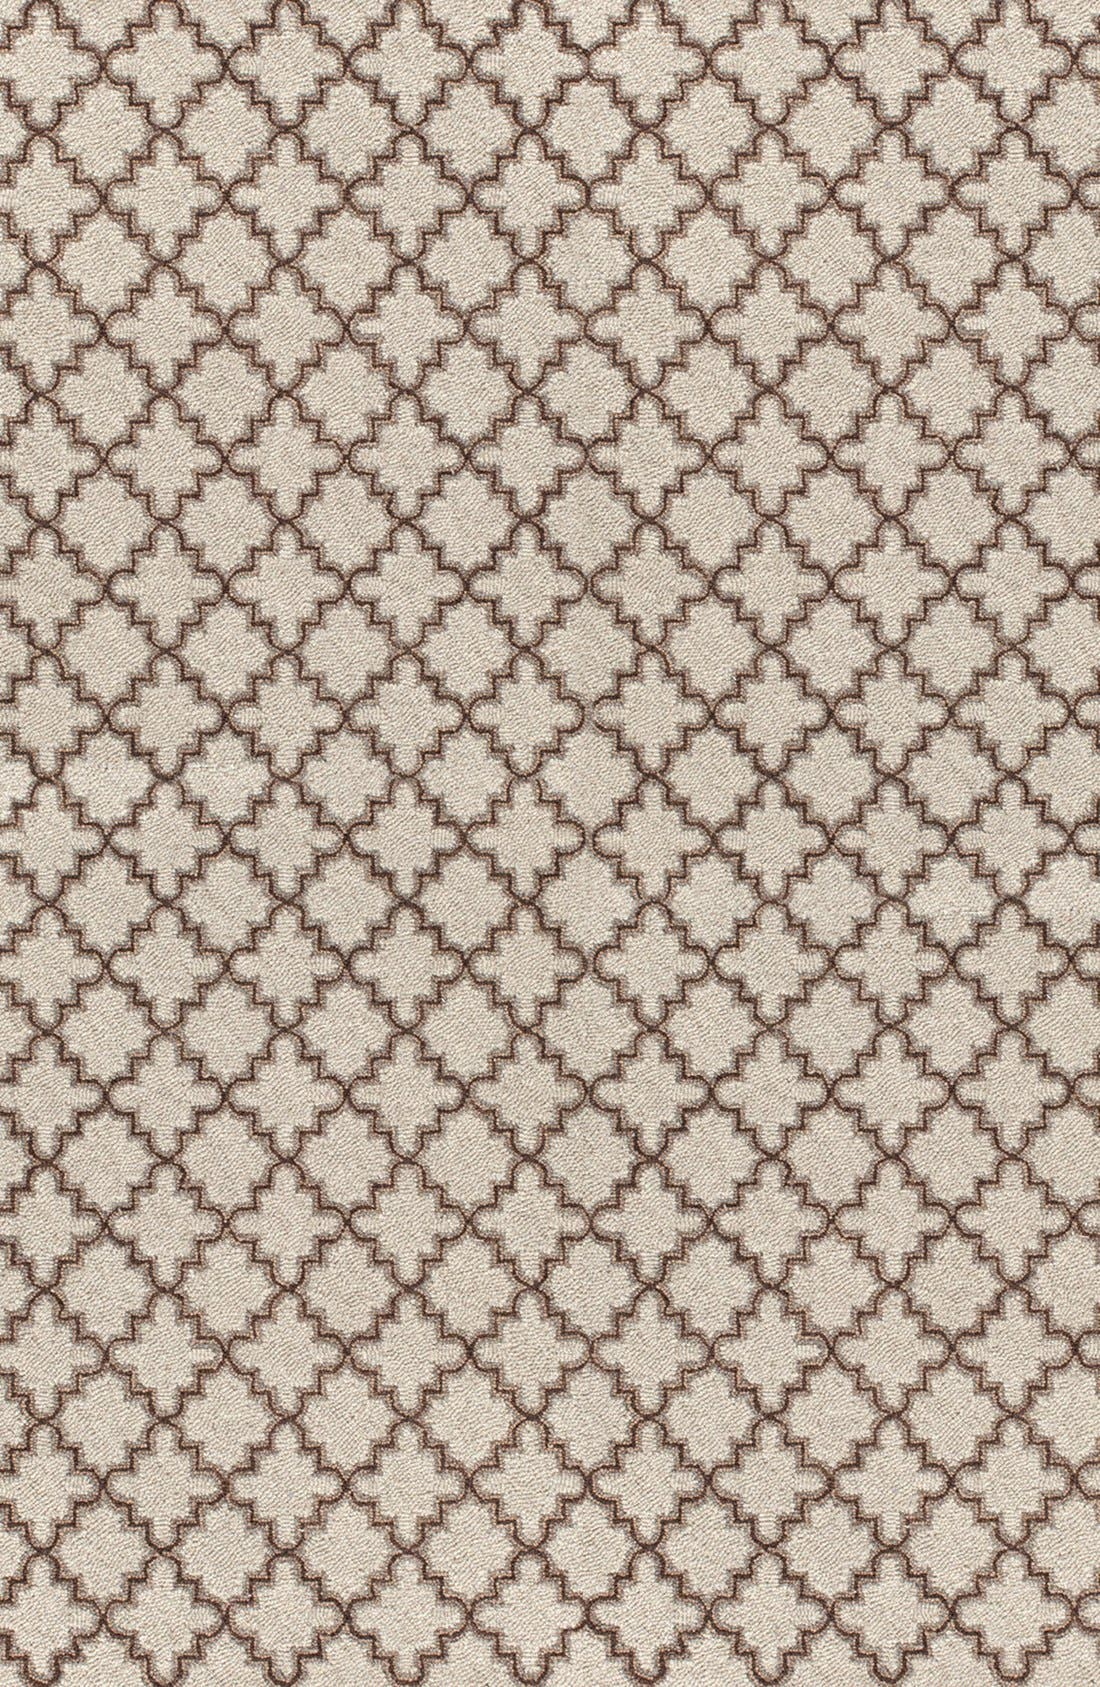 Hooked Wool Rug,                         Main,                         color, 230